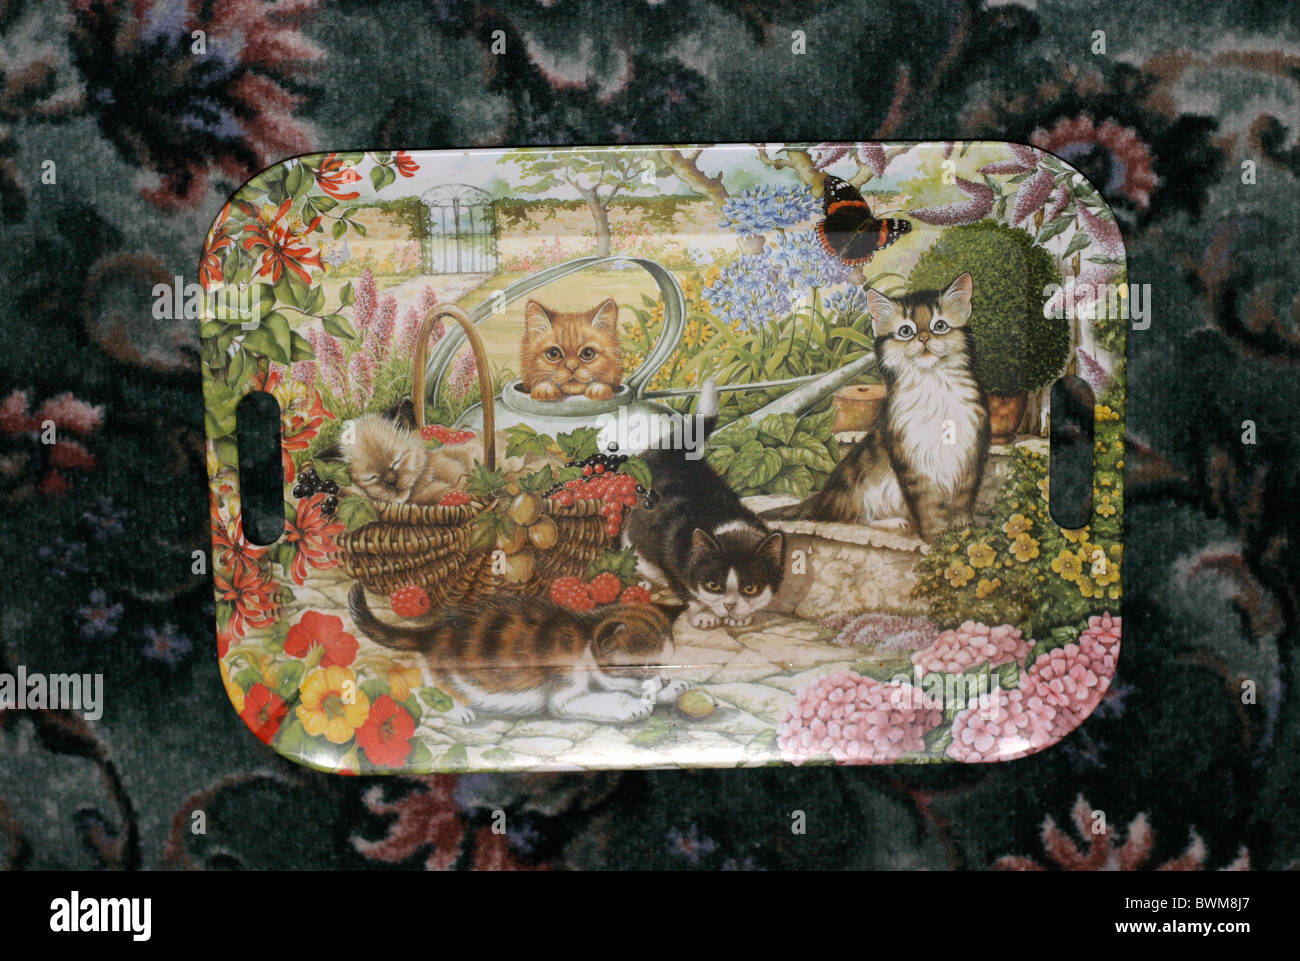 Kitsch tray - Stock Image